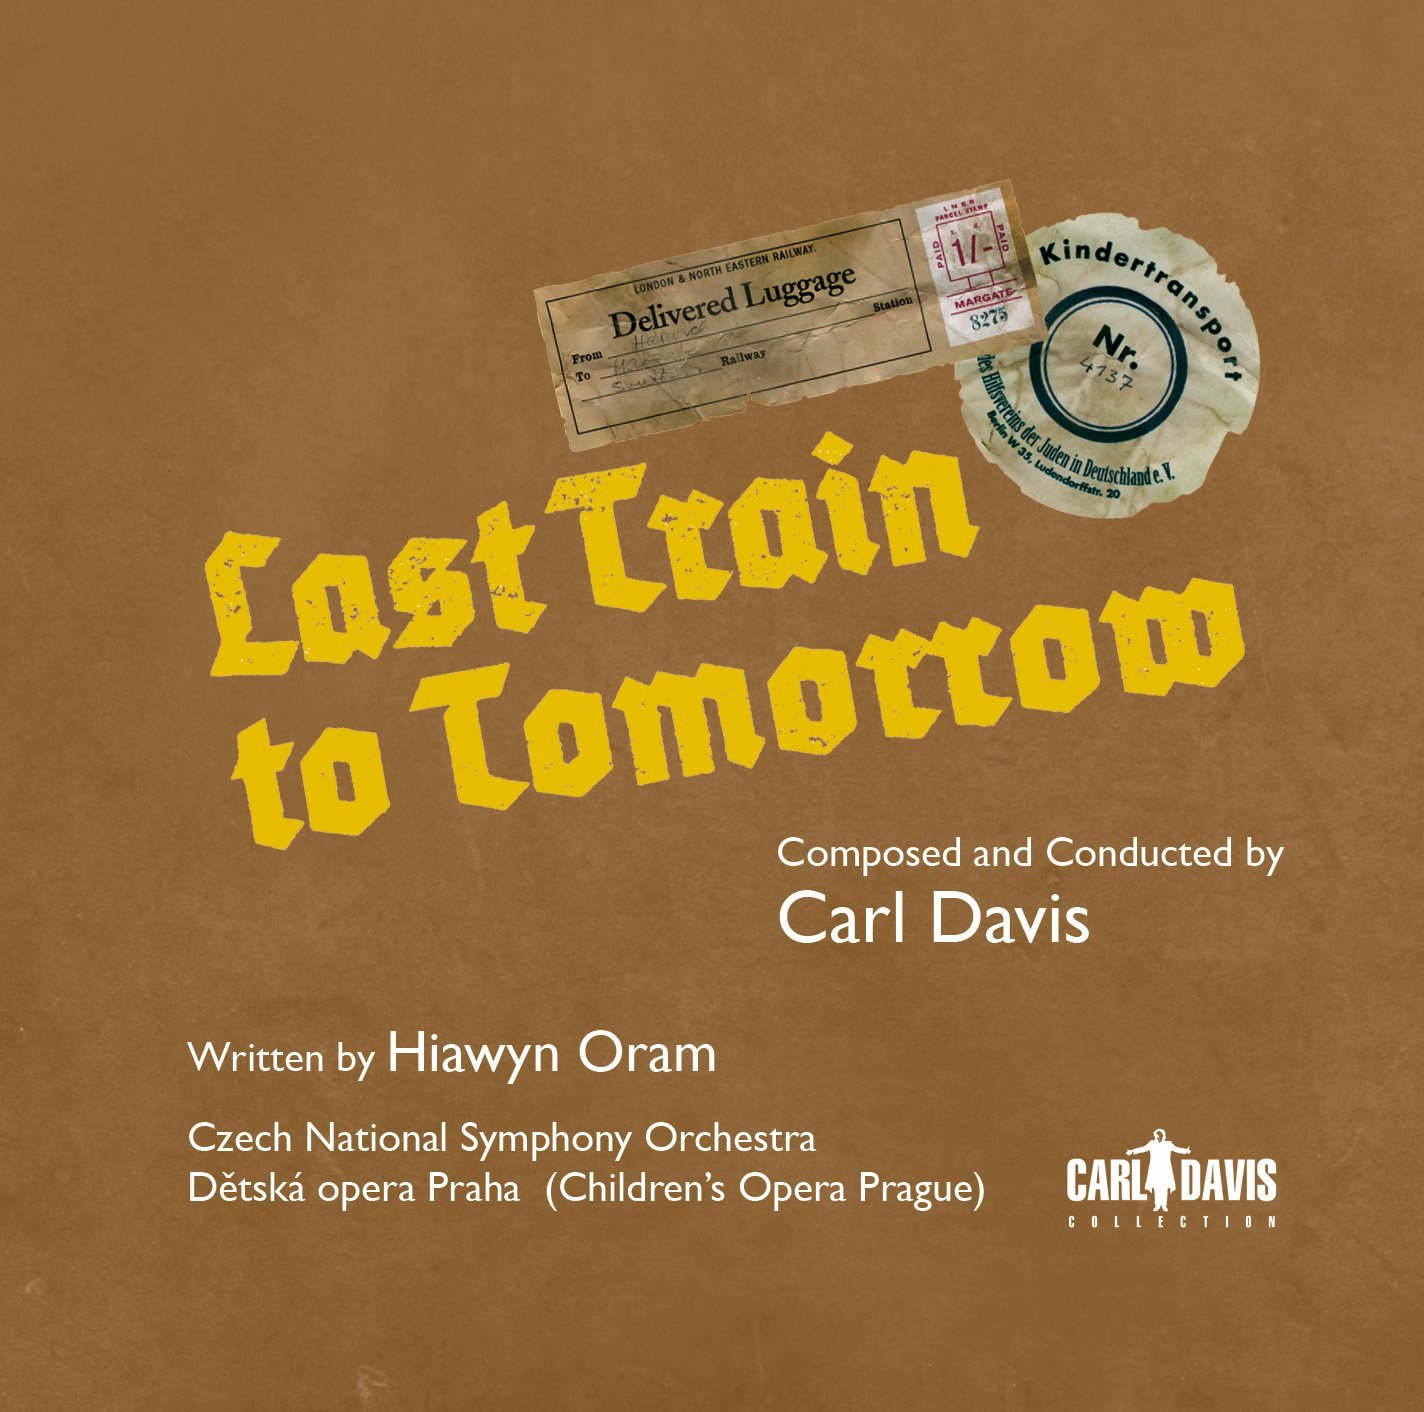 CD_Davis_Last Train to Tomorrow